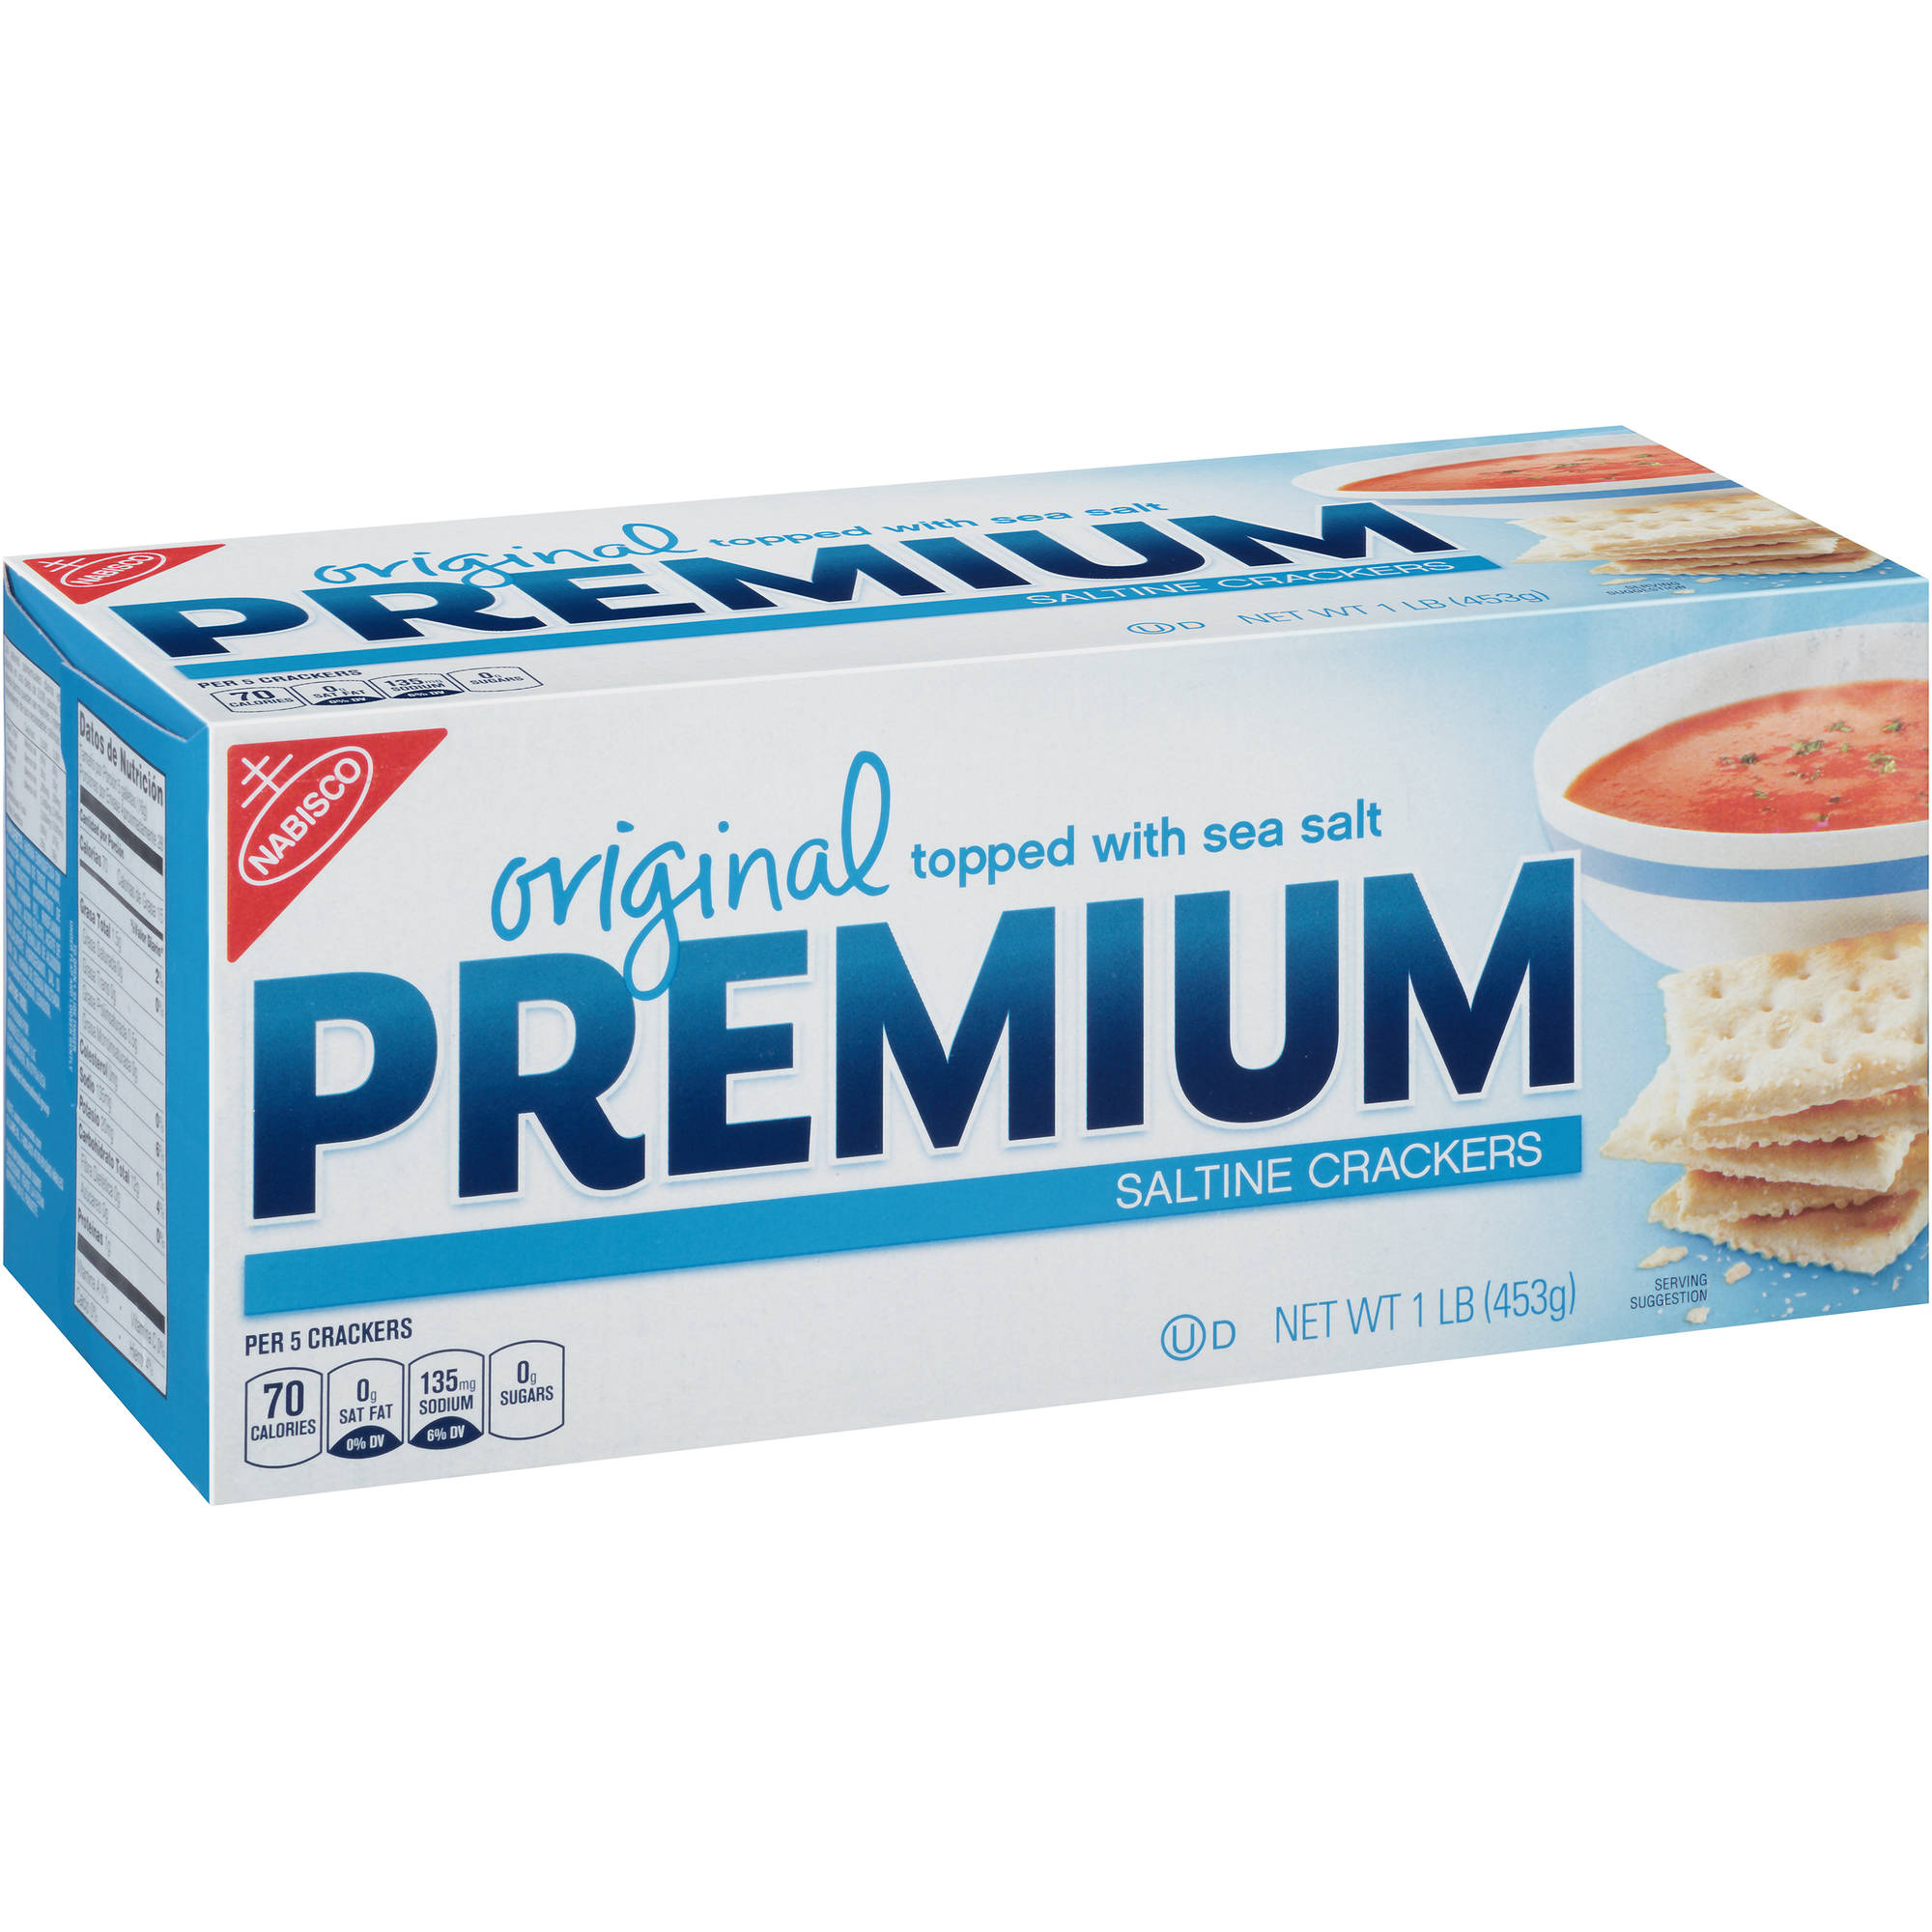 Nabisco Original Premium Saltine Crackers, 16 oz